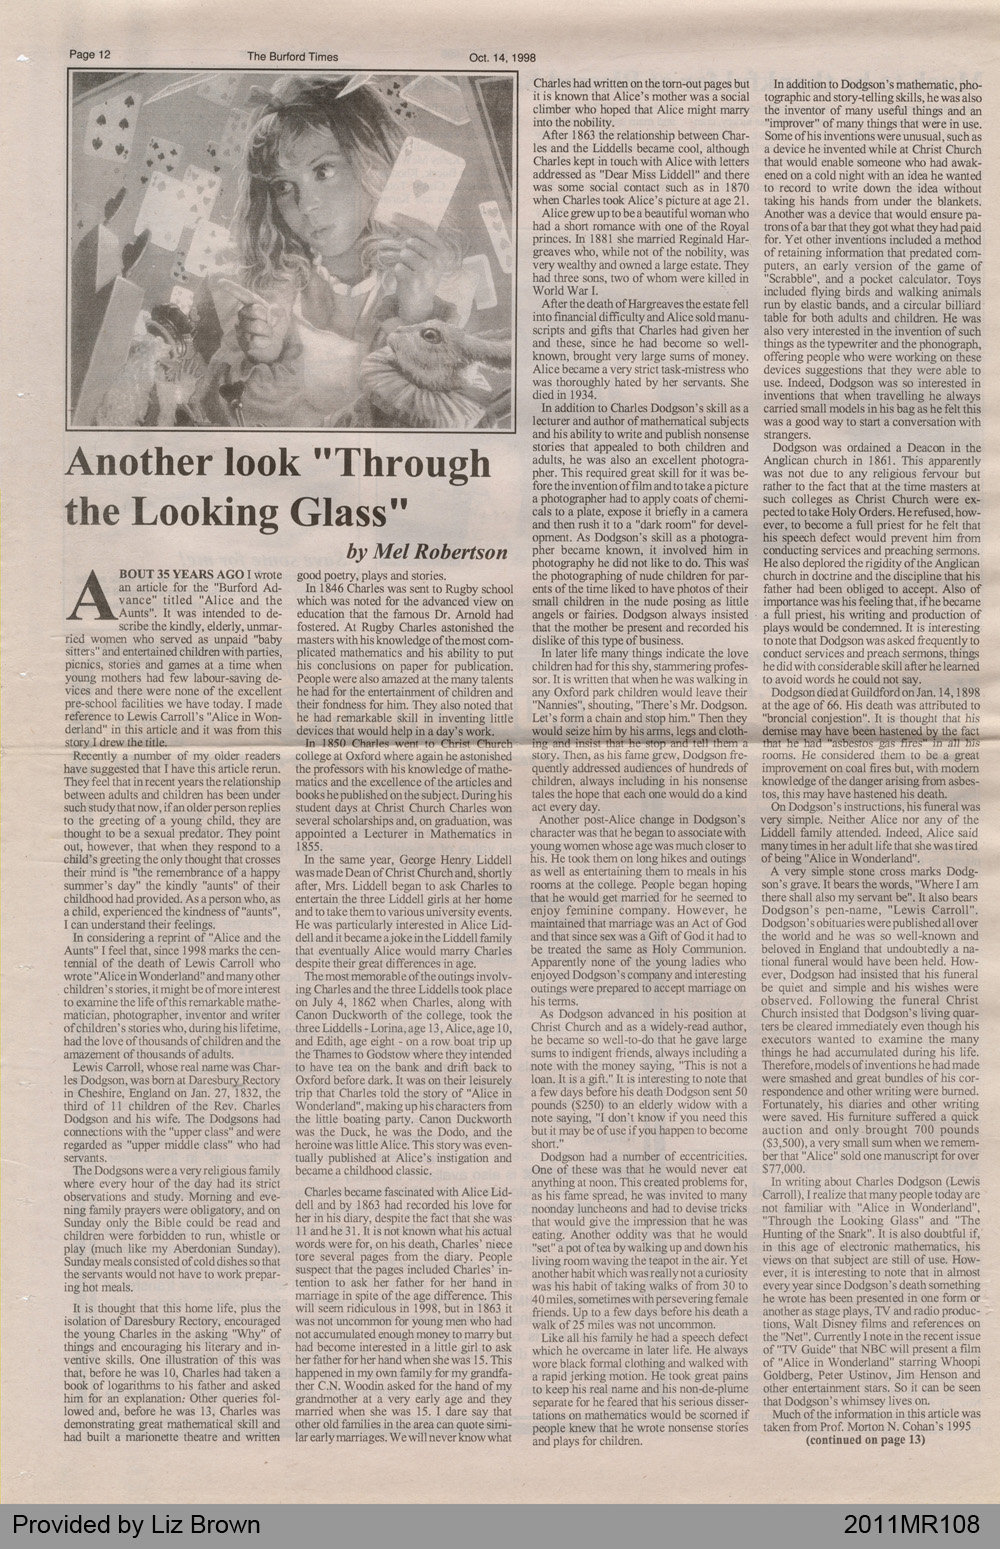 """Another Look """"Through the Looking Glass"""" by Mel Robertson, from The Burford Times"""